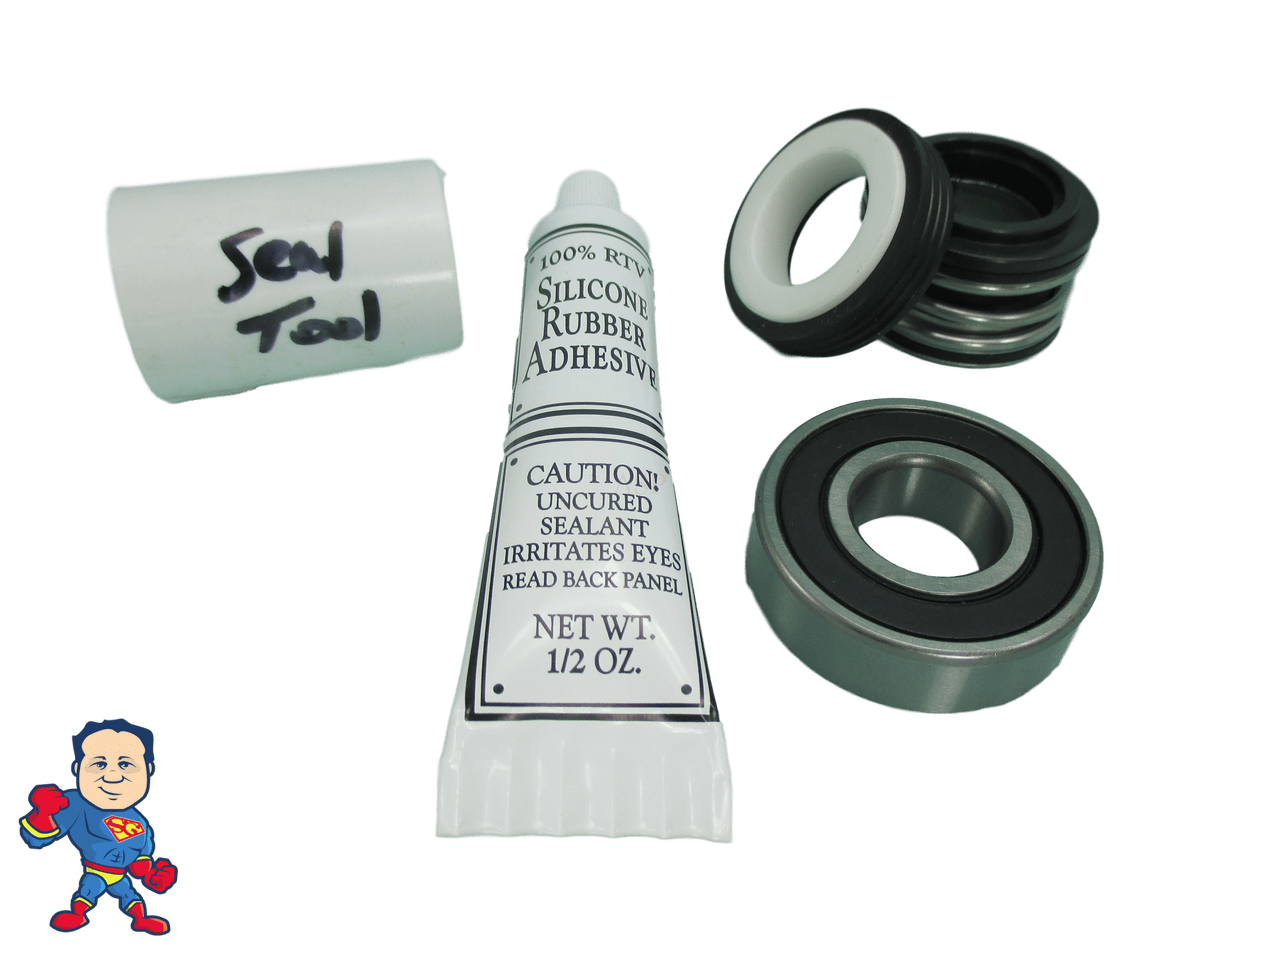 Jacuzzi Pool Pump Seal Kit 1 Front Bearing Seal Pump Parts Kit Fits Most Vico Sta Rite Spa Hot Tub Pumps